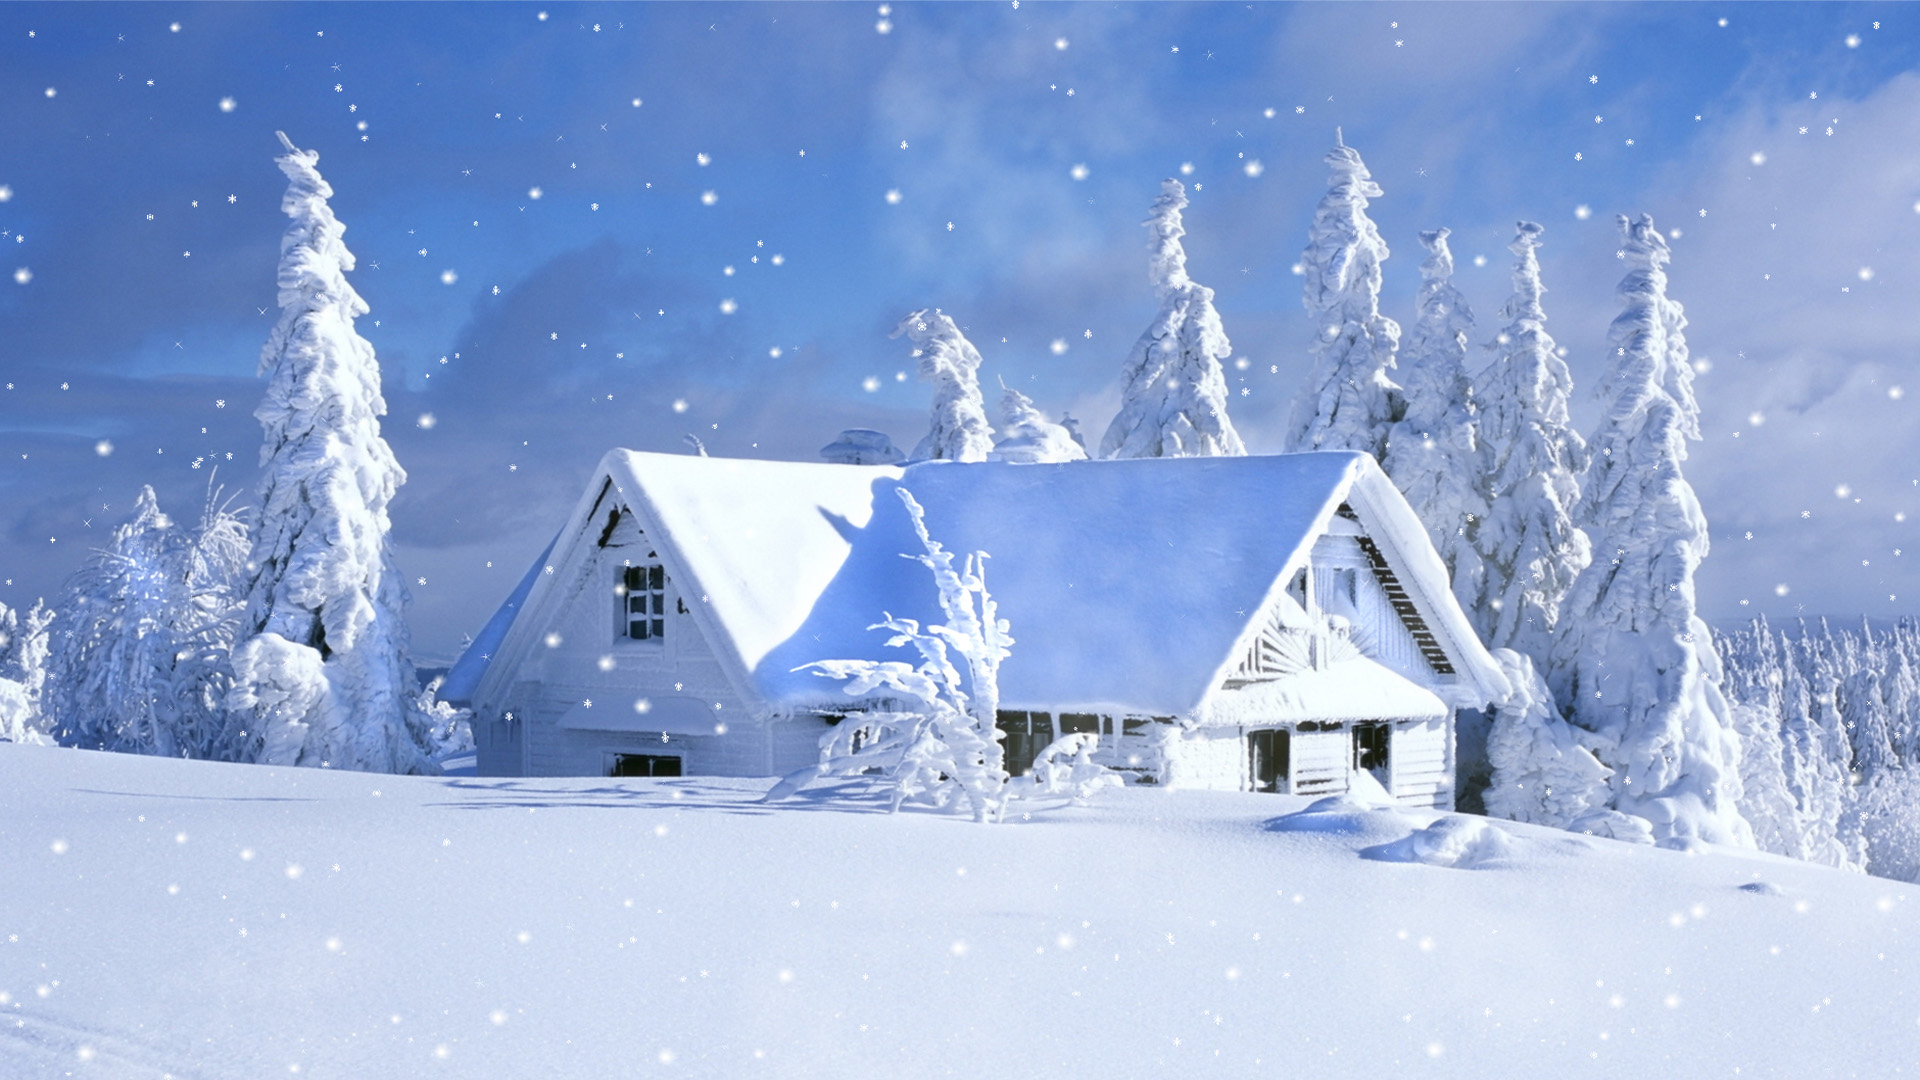 Snowfall fantasy free snowfall screensaver - Free screensavers snowflakes falling ...